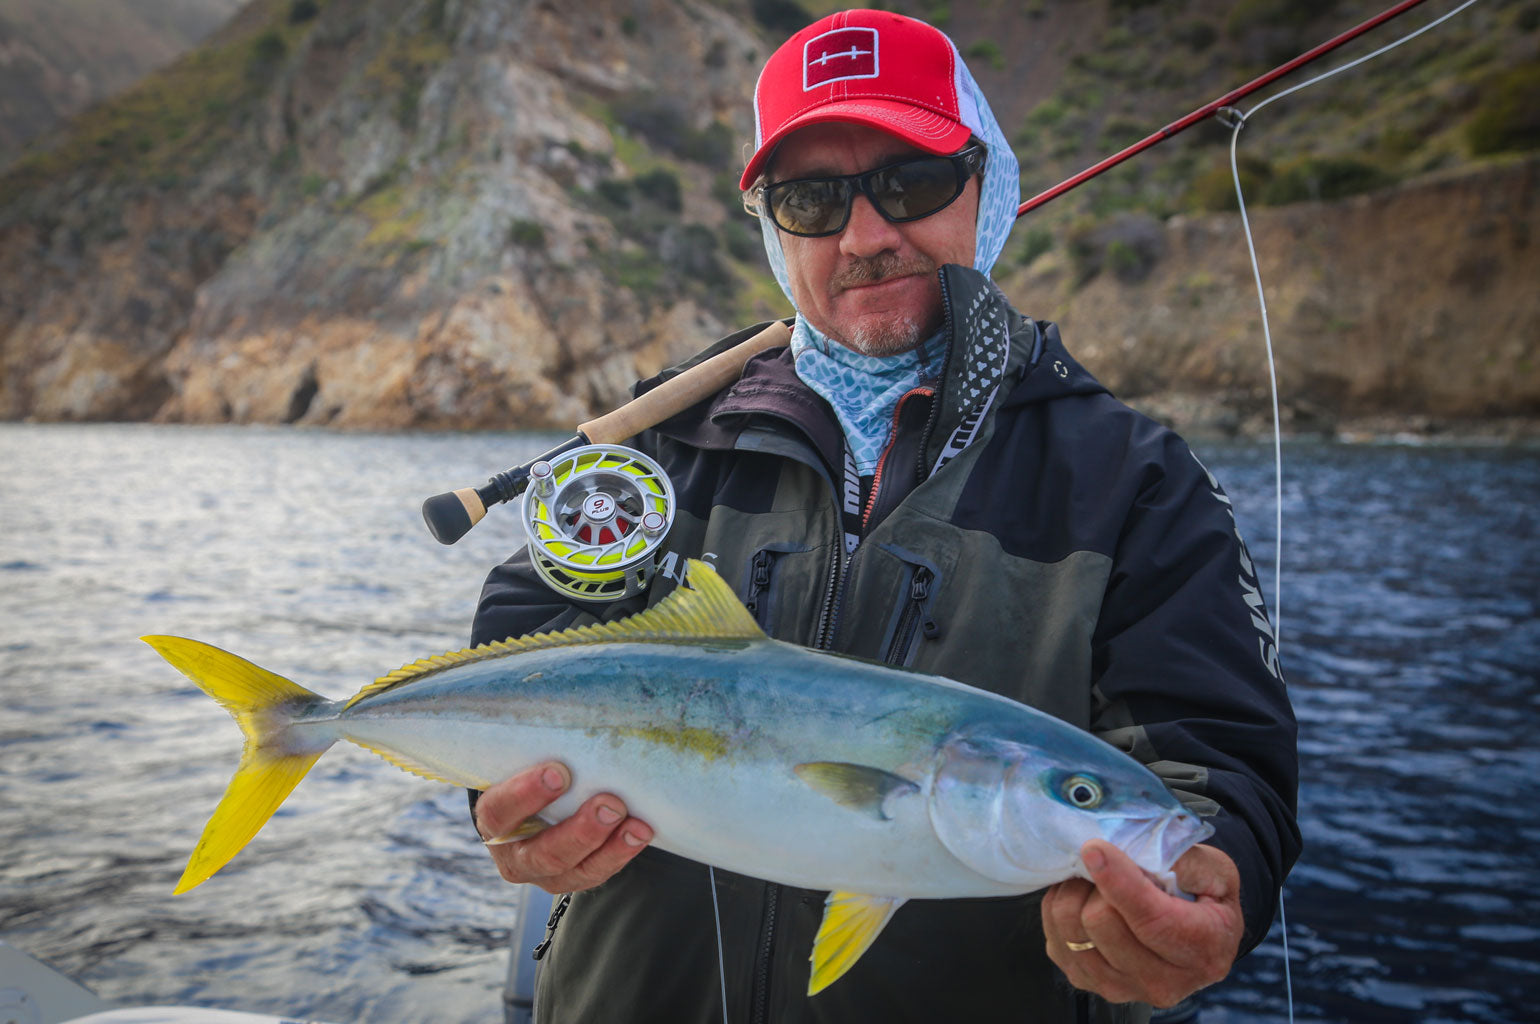 Capt. Vaughn Podmore Hatch Outdoors Pro Staff